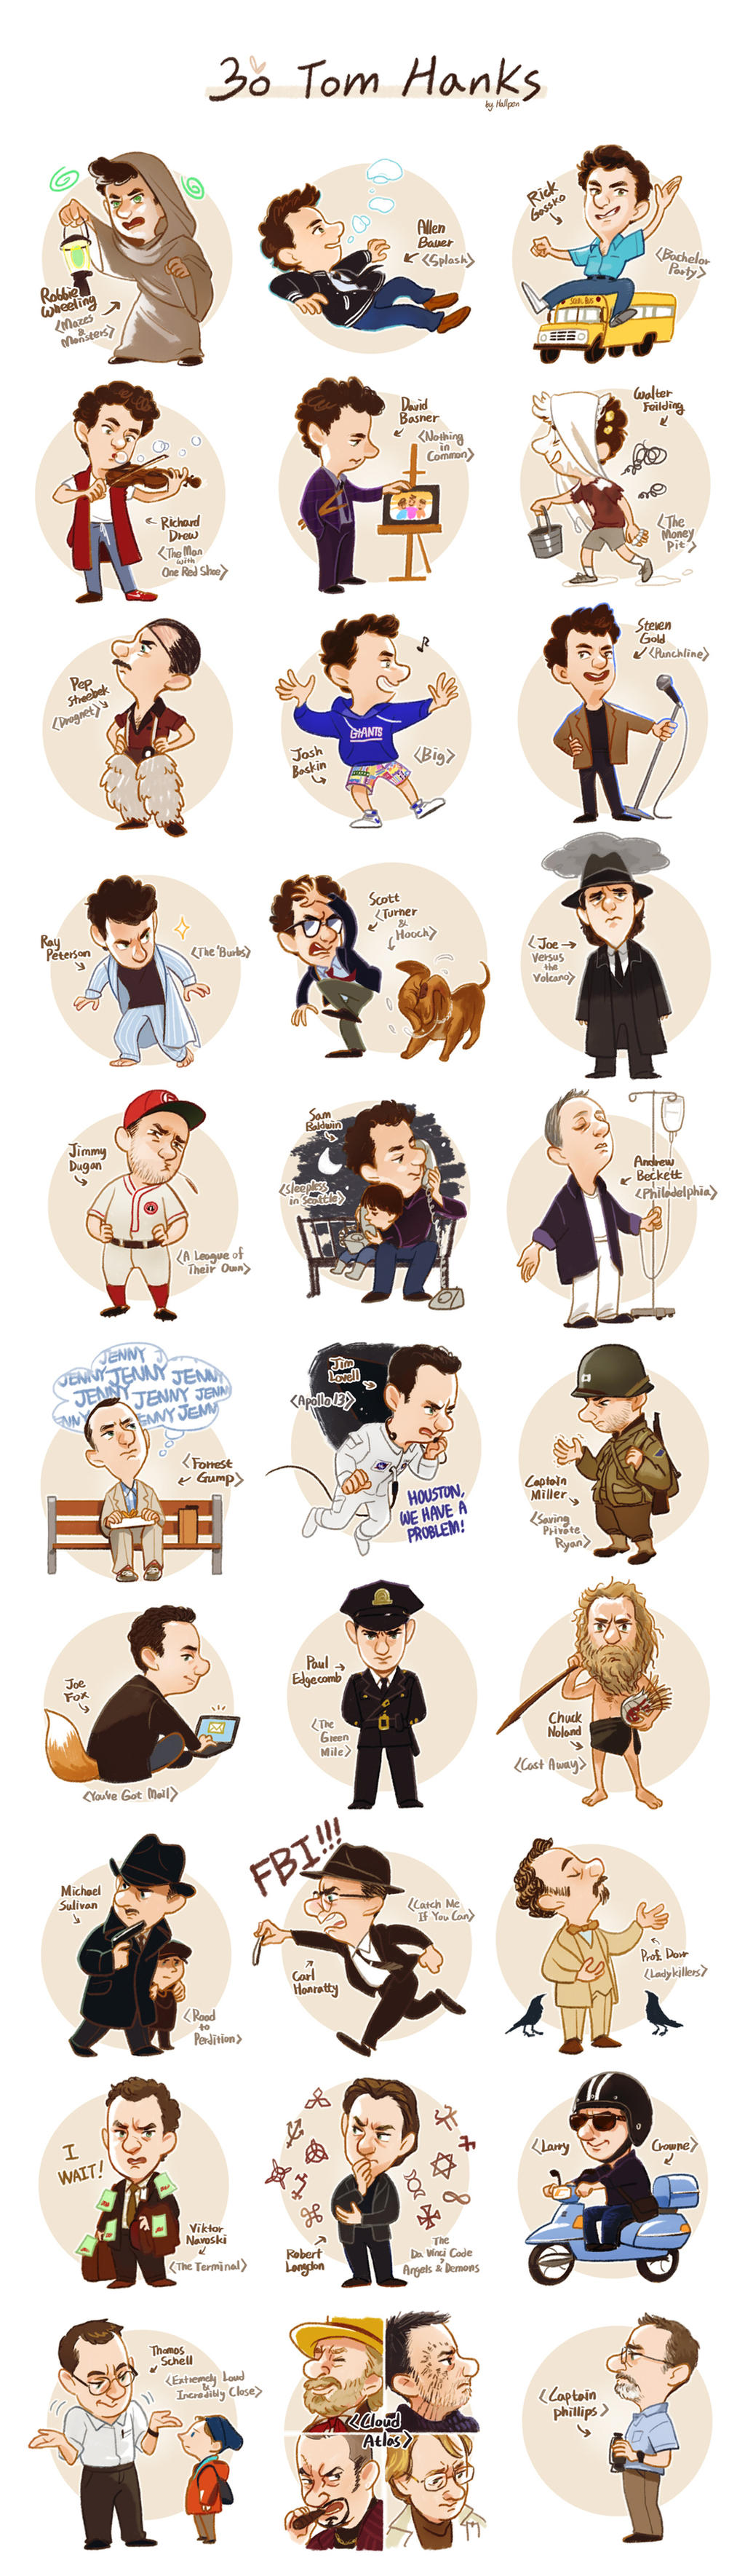 30 Tom Hanks by Hallpen